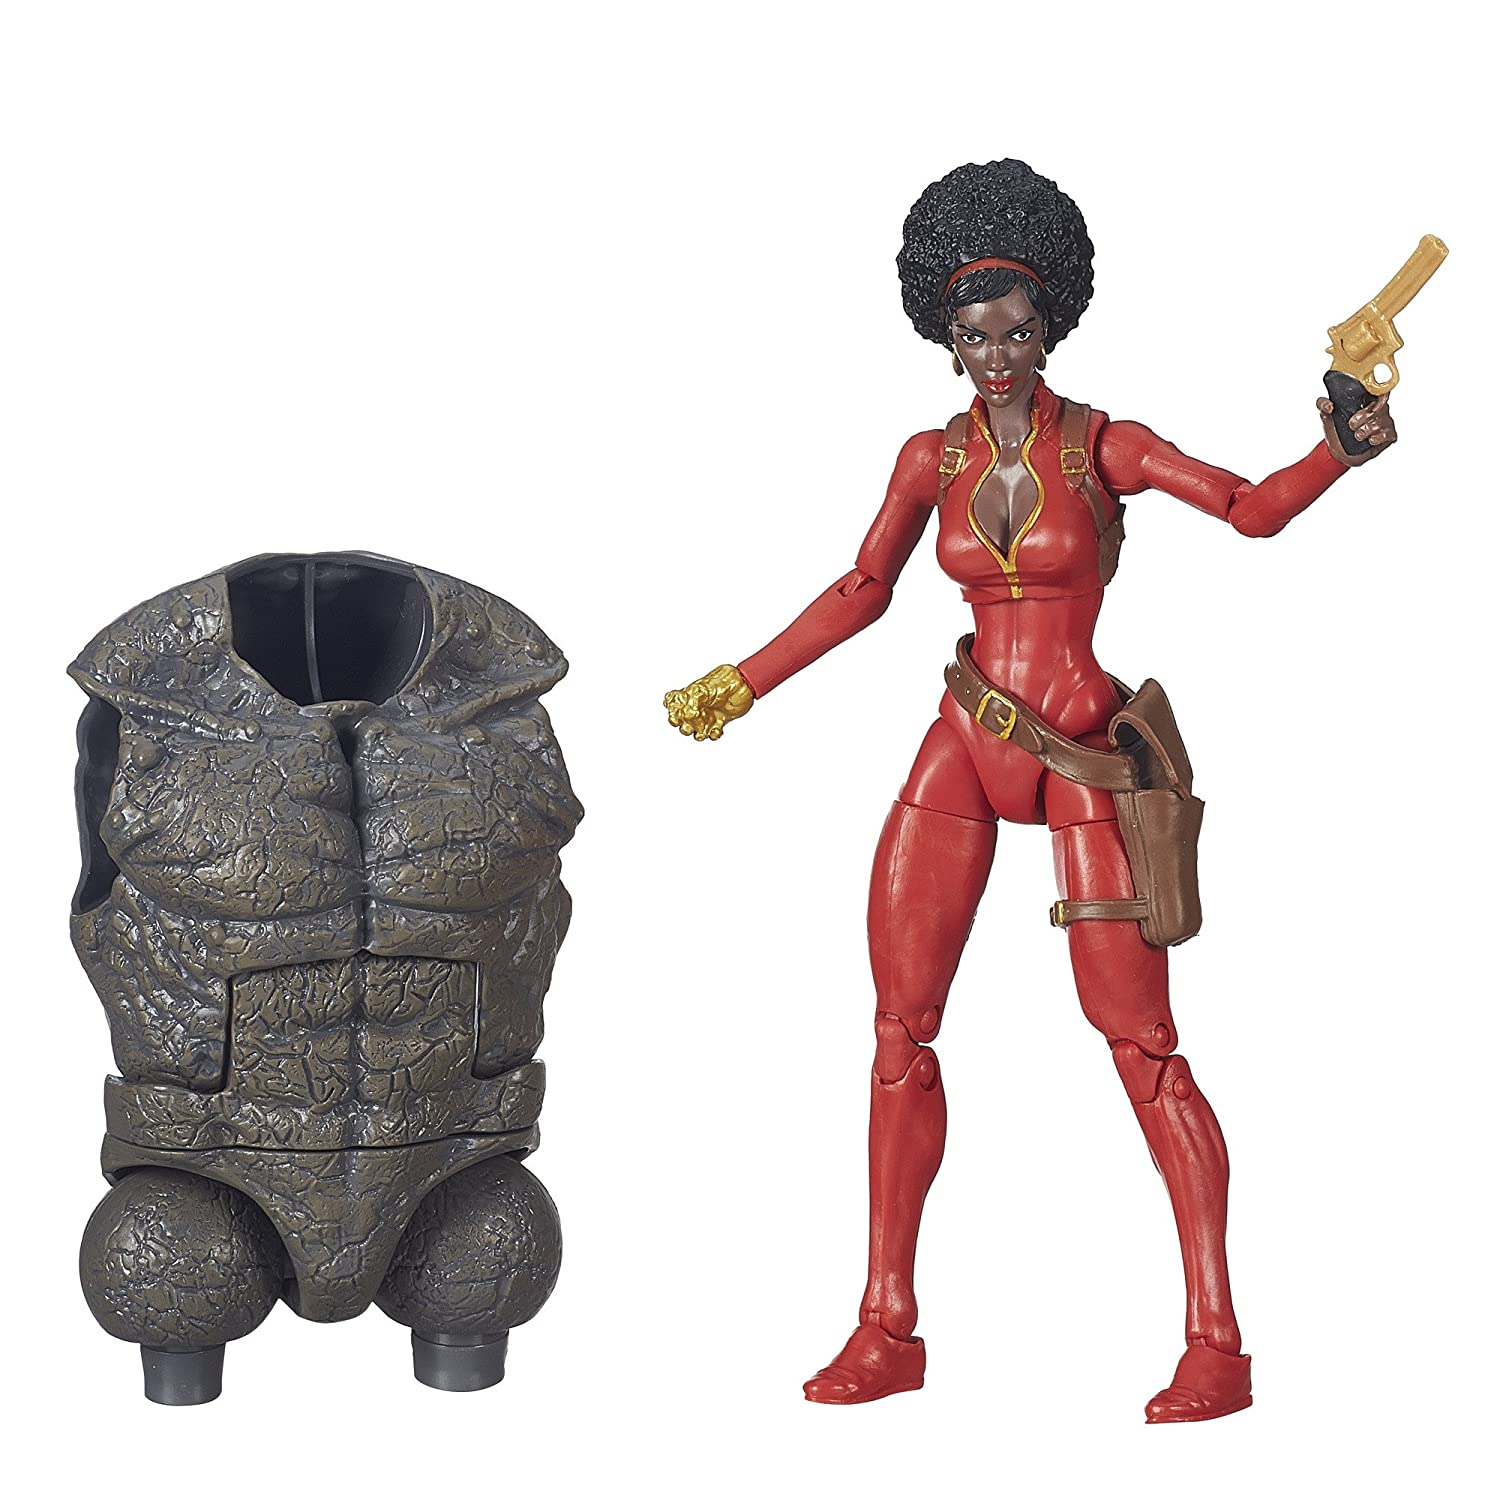 Marvel Legends 2015 Spider-Man Infinite Serie 2 Actionfiguren: Misty Knight bestellen